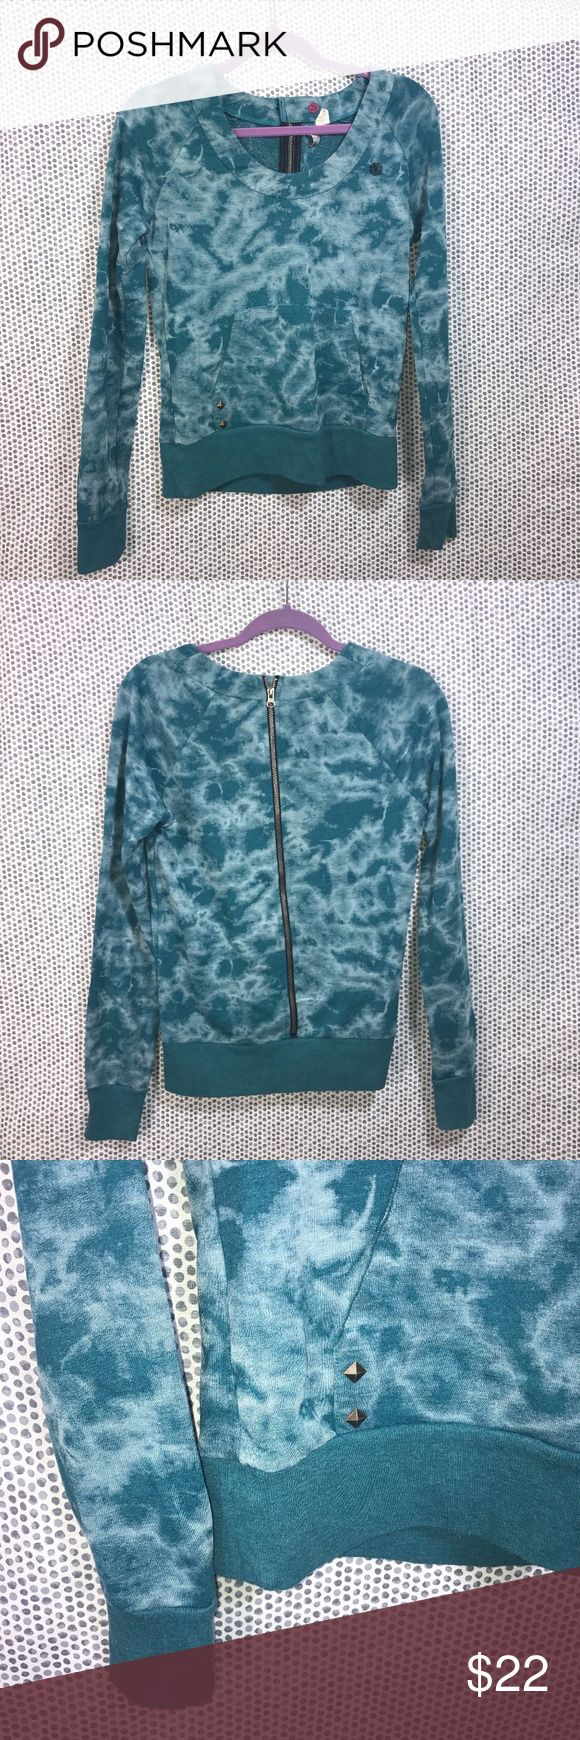 Element Women's Tie-Dye Blue & White Sweatshirt * Element Women's Tie-Dye Blue & White Pullover Scoop Neck Sweatshirt w/ Zippered Back and button closure. Pocket with stud details.  * Size Medium * Made of 60% cotton & 40% polyester.  * Pre-owned, but in great used condition. No holes, stains or pilling.  * Measurements: Underarm to underarm is 19 inches. Length is 24 1/2 inches.  J24 Element Tops Sweatshirts & Hoodies